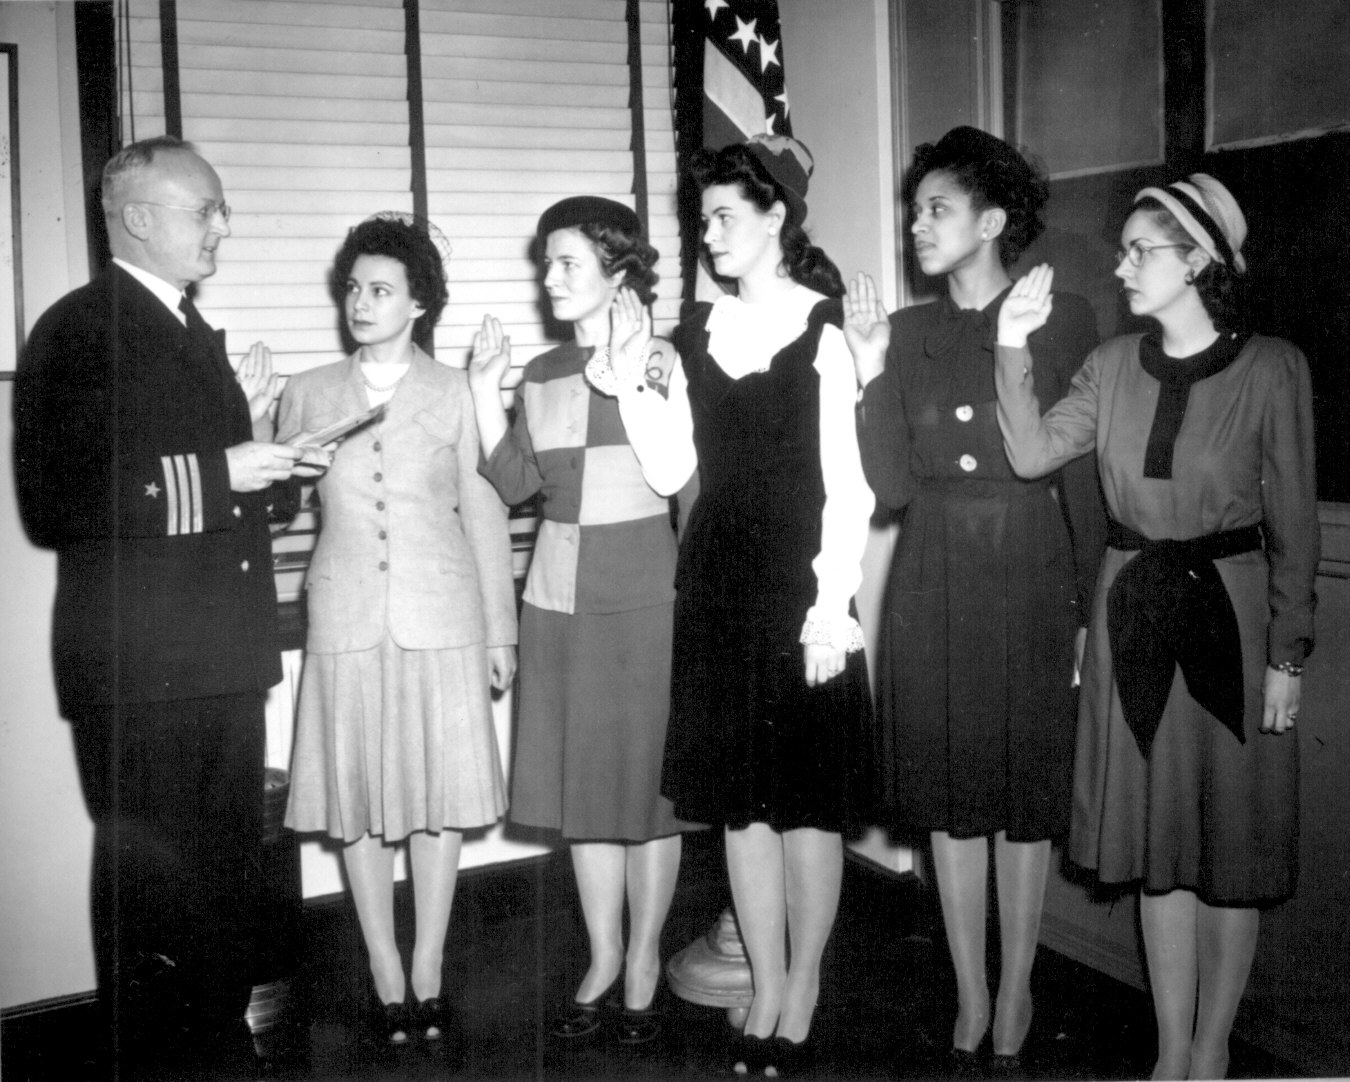 US Navy Cdr. Thomas Gaylord administering oath to nurses commissioned in New York, 8 Mar 1945; Phyllis Mae Daley, US Navy's first African-American nurse, second from right. (US National Archives: 80-G-4836)